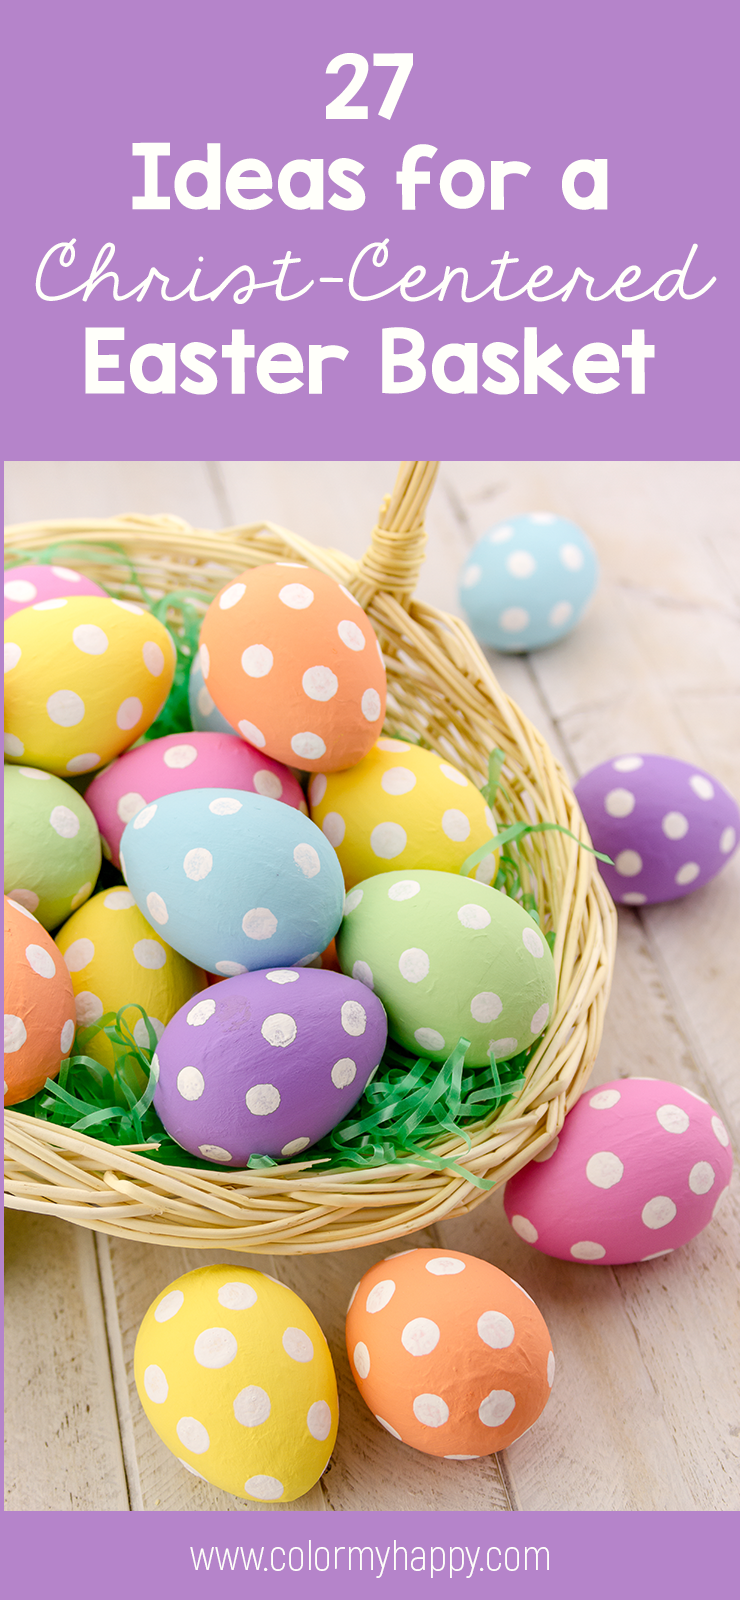 Easter baskets are a super fun tradition! If you're looking for ways to keep the focus on Christ this Easter, here are some ideas for a religious Easter basket.